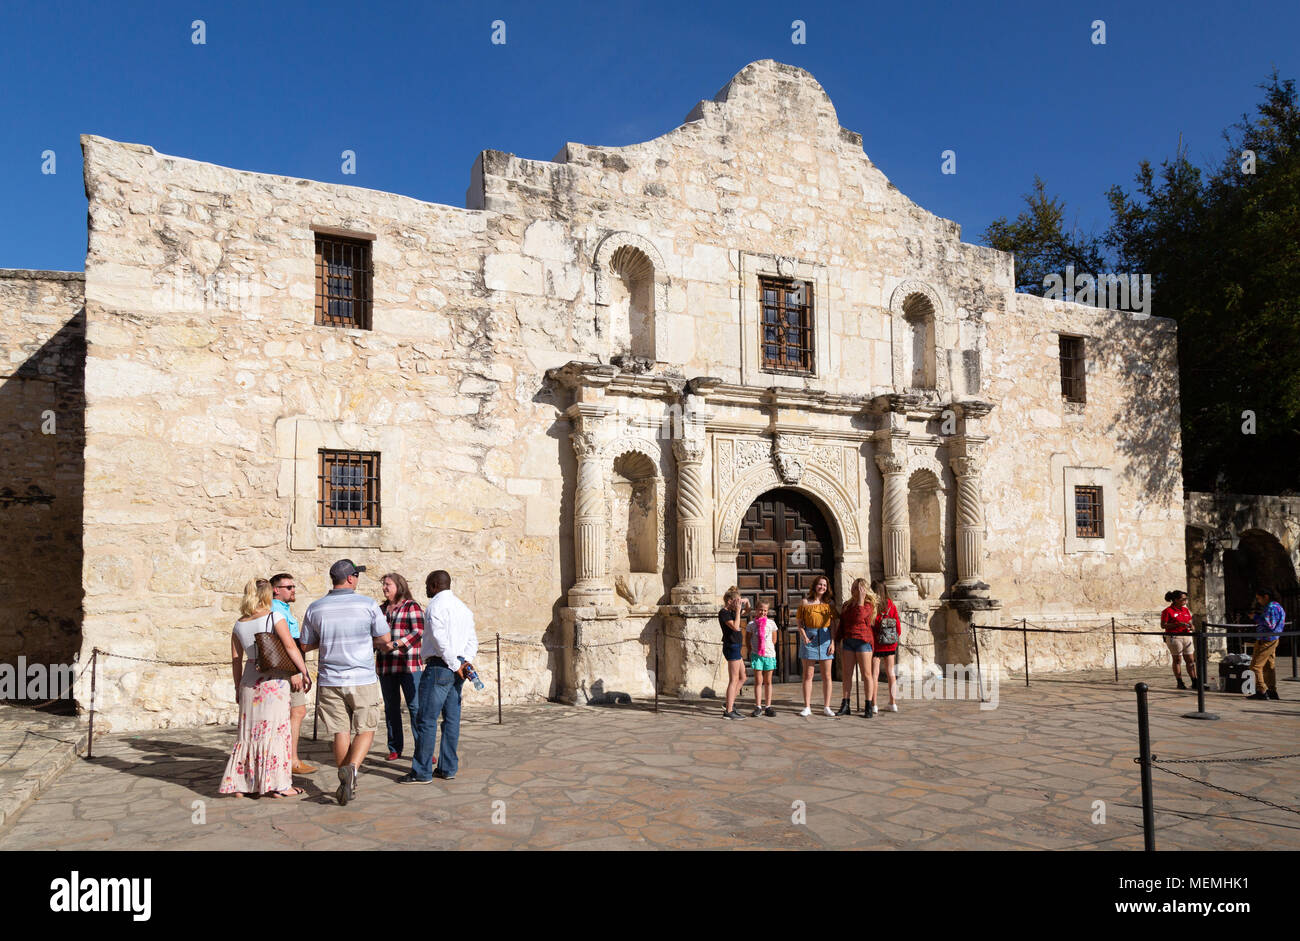 Texas tourists at the Alamo Mission on a sunny spring day in march, The Alamo, San Antonio, Texas USA - Stock Image